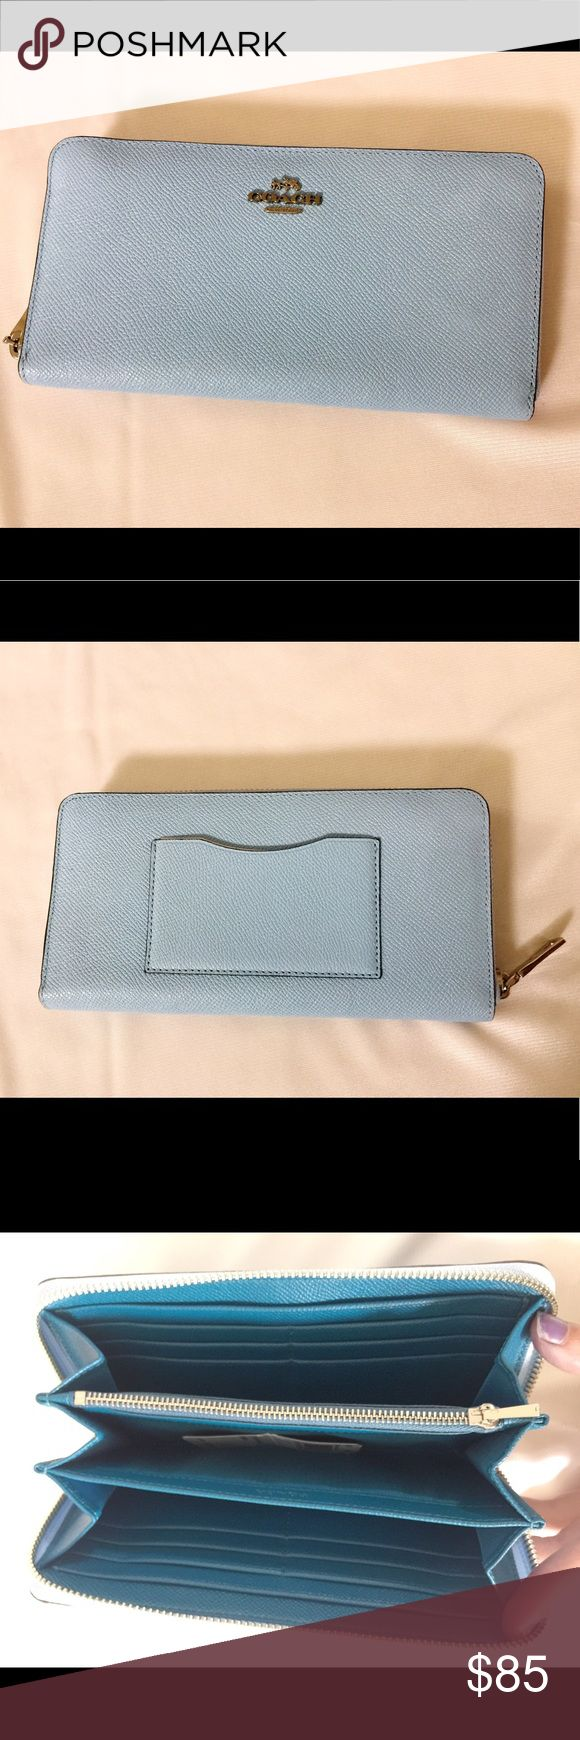 NWT! Coach light blue pebbled leather wallet NWT coach light blue pebbled leather wallet. Orig. $225.00 Coach Bags Wallets